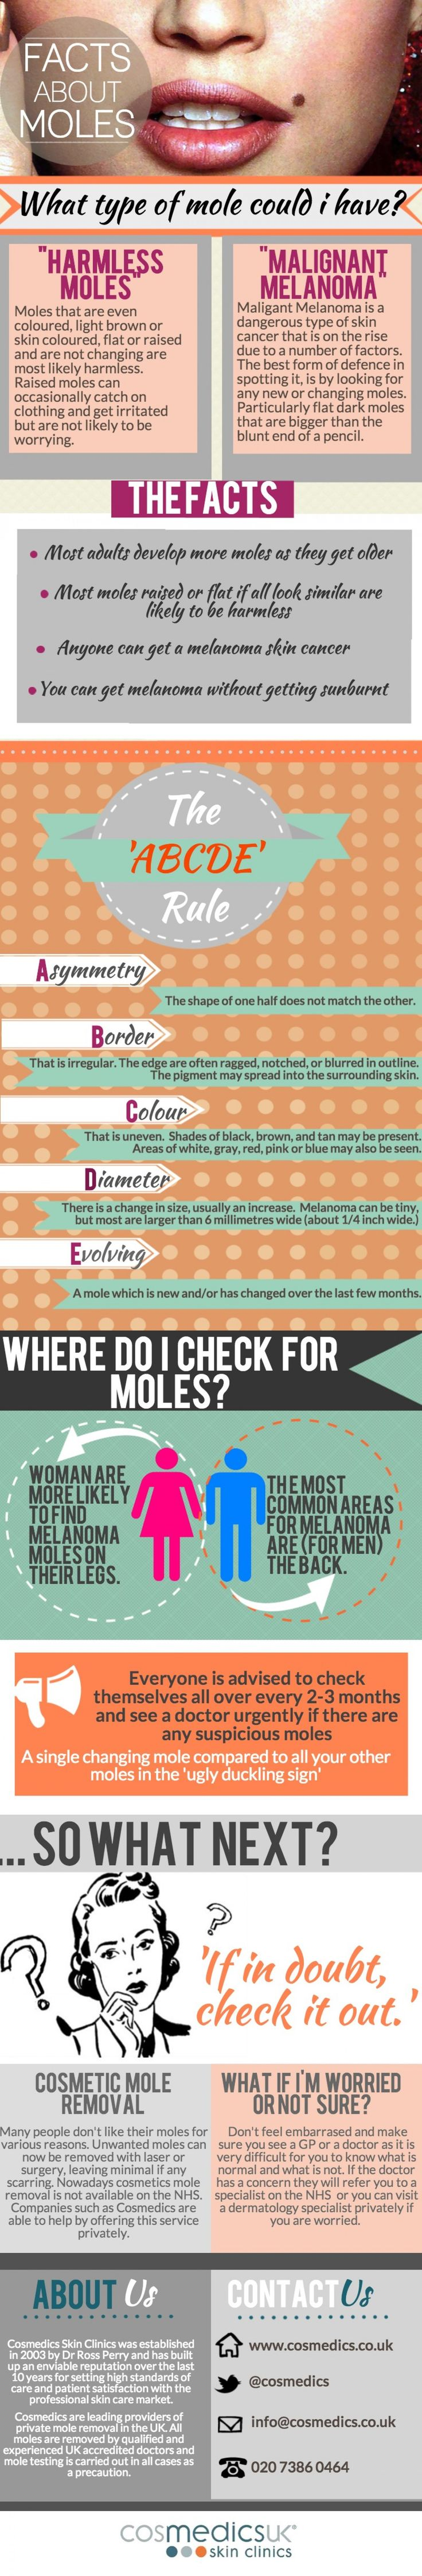 Yard moles and vinegar and castor oil - 17 Best Ideas About Mole Removal On Pinterest Apple Cider Vinegar Warts Natural Mole Removal And How To Remove Moles